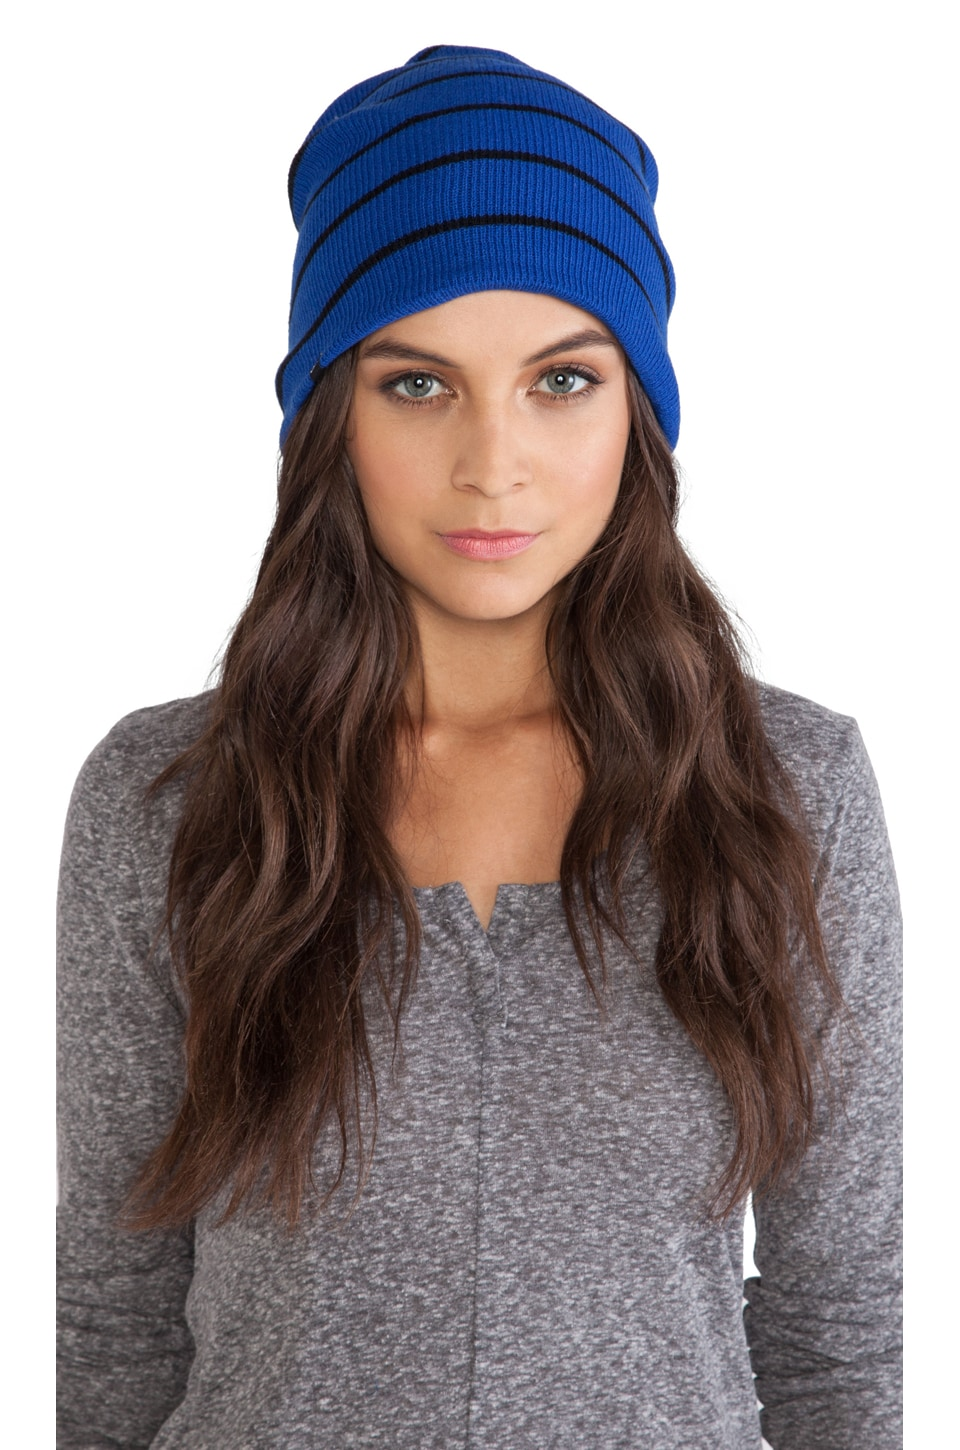 Plush Striped Fleece Lined Barca Hat in Cobalt and Black